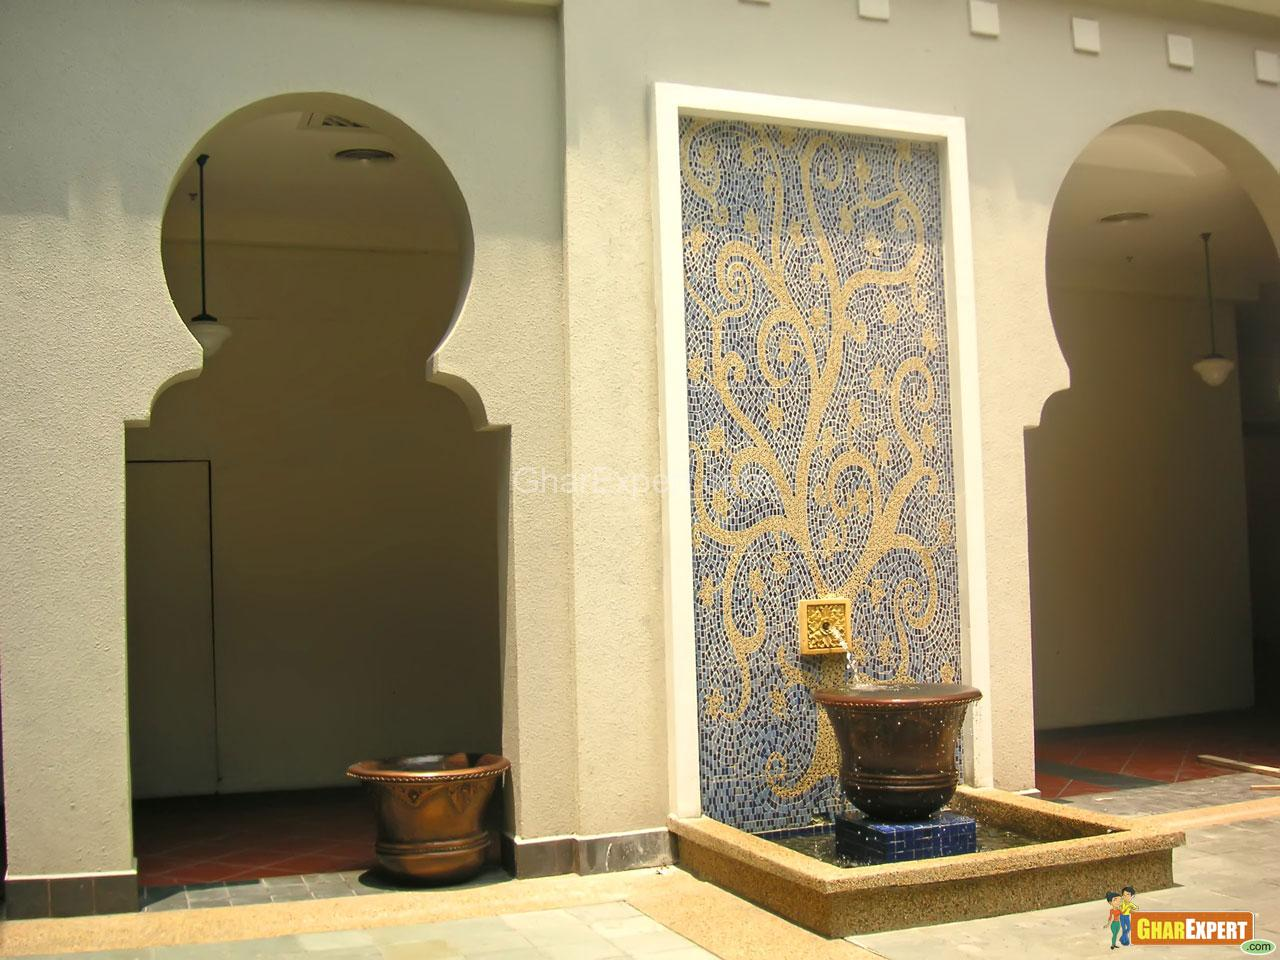 Wall Pattern with Fountain Des....